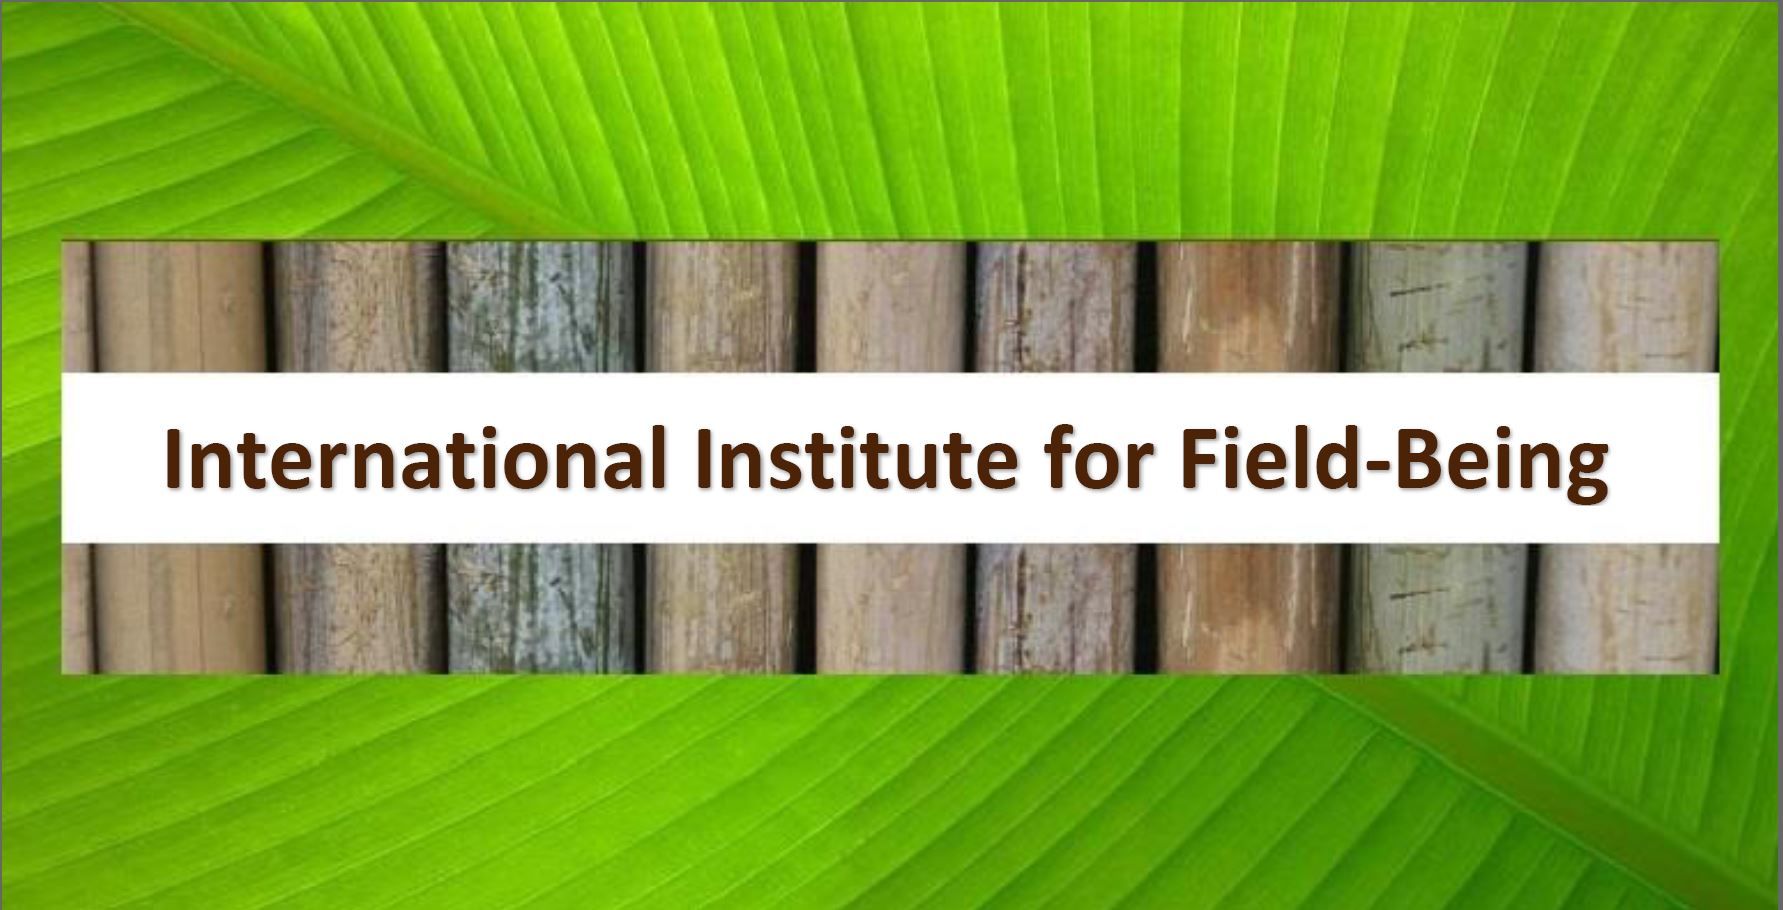 The International Institute for Field-Being